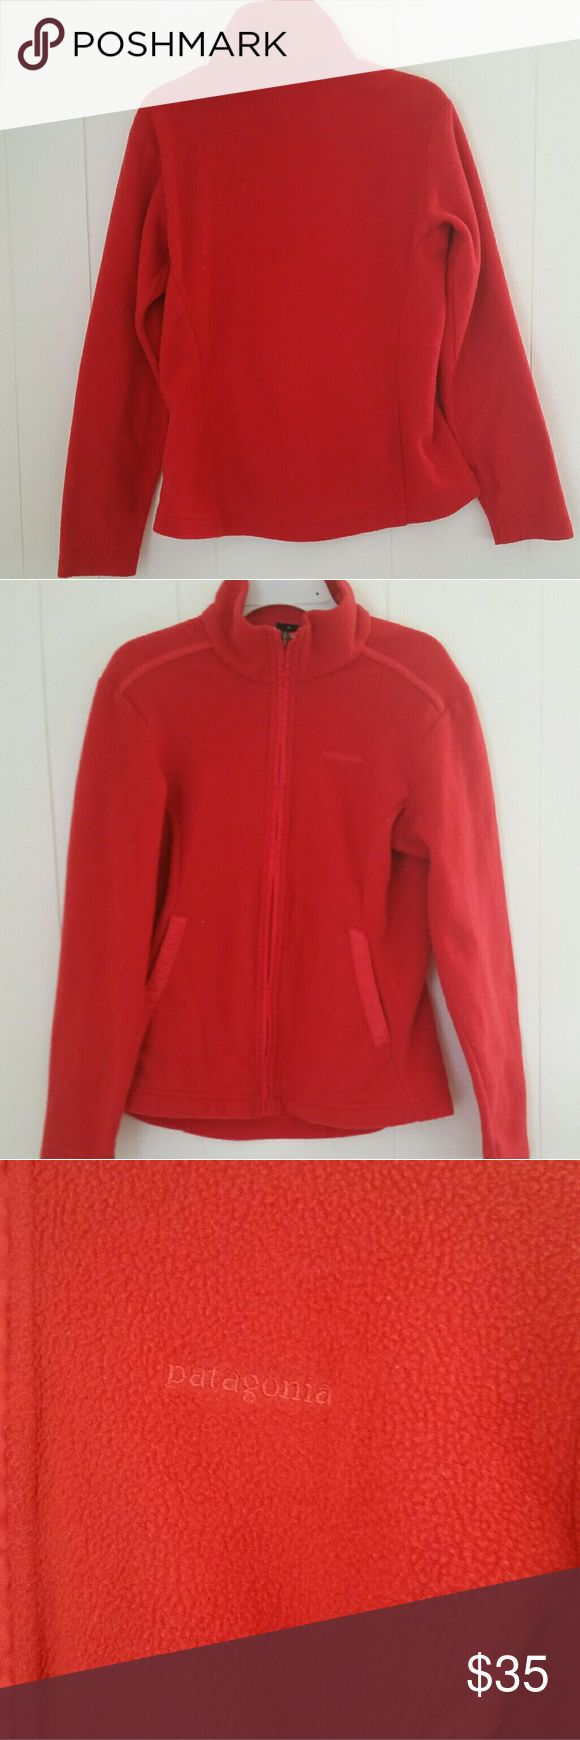 Womens Patagonia Fleece Jacket Size XS Color - orange  Brand - Patagonia Tag is marked as seen in photos In EUC  100% polyester Patagonia Jackets & Coats